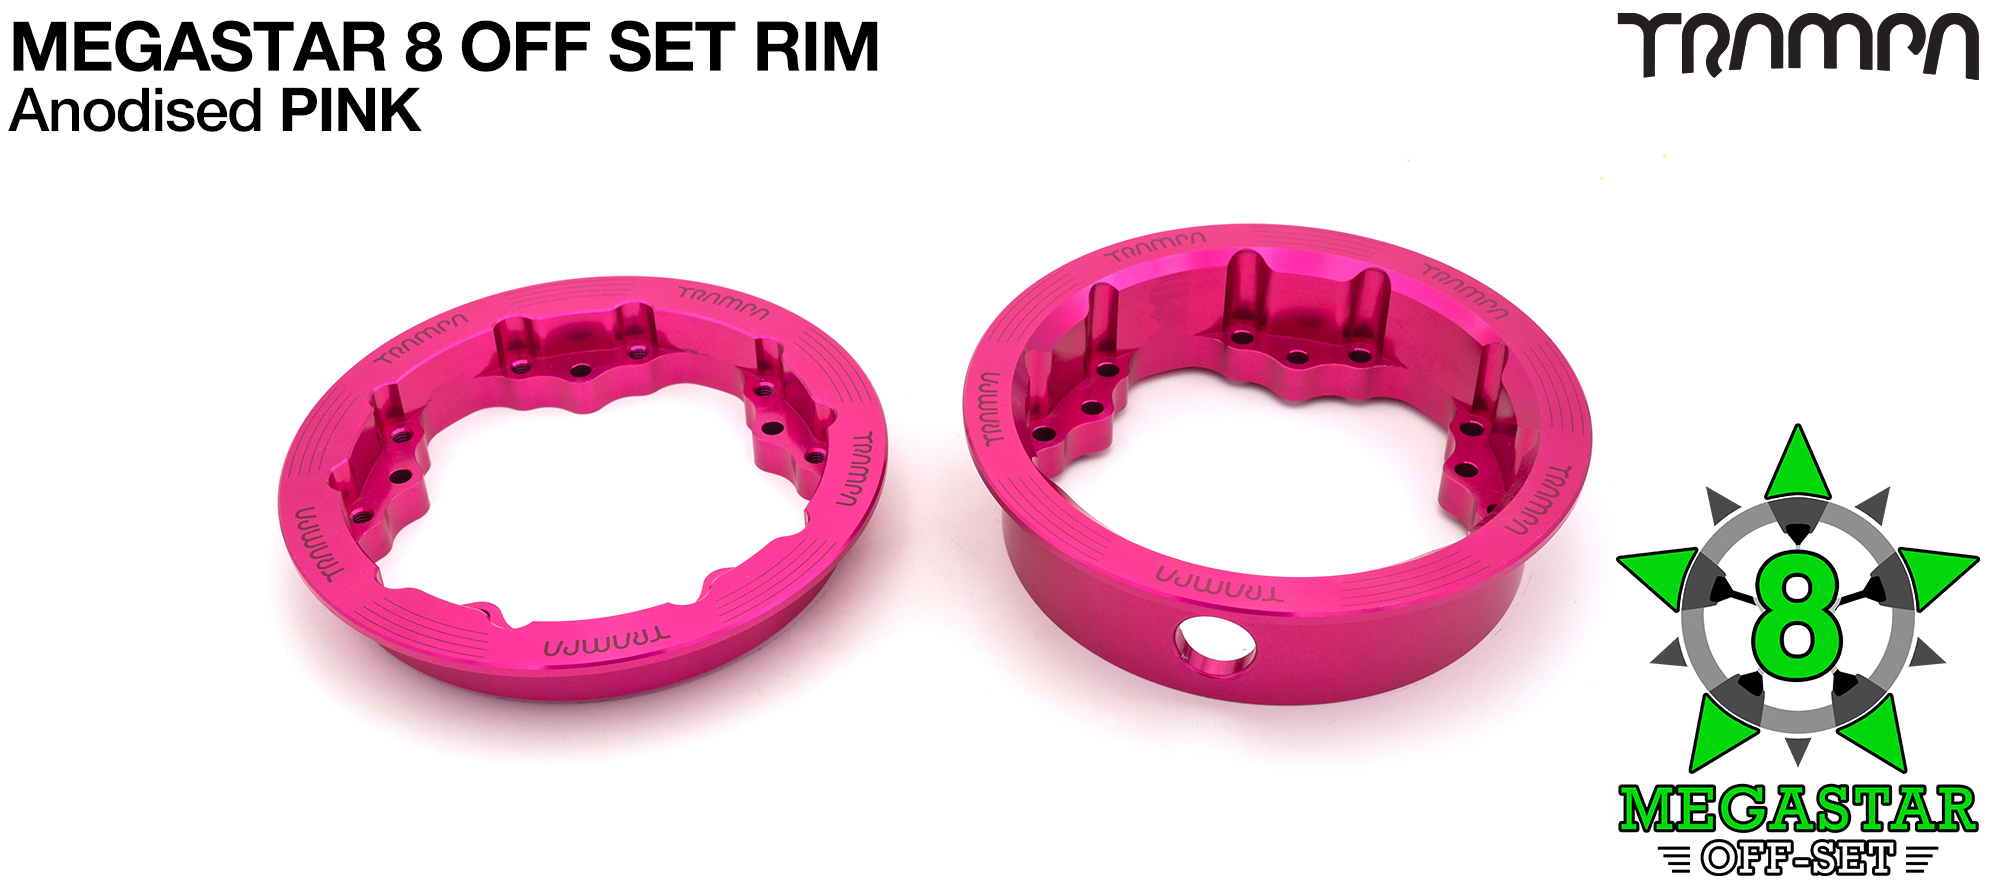 8 Inch MEGASTAR Rim OFF SET - Anodised Pink - Pro OFF-SET Superstars will widen your wheel base by 15mm